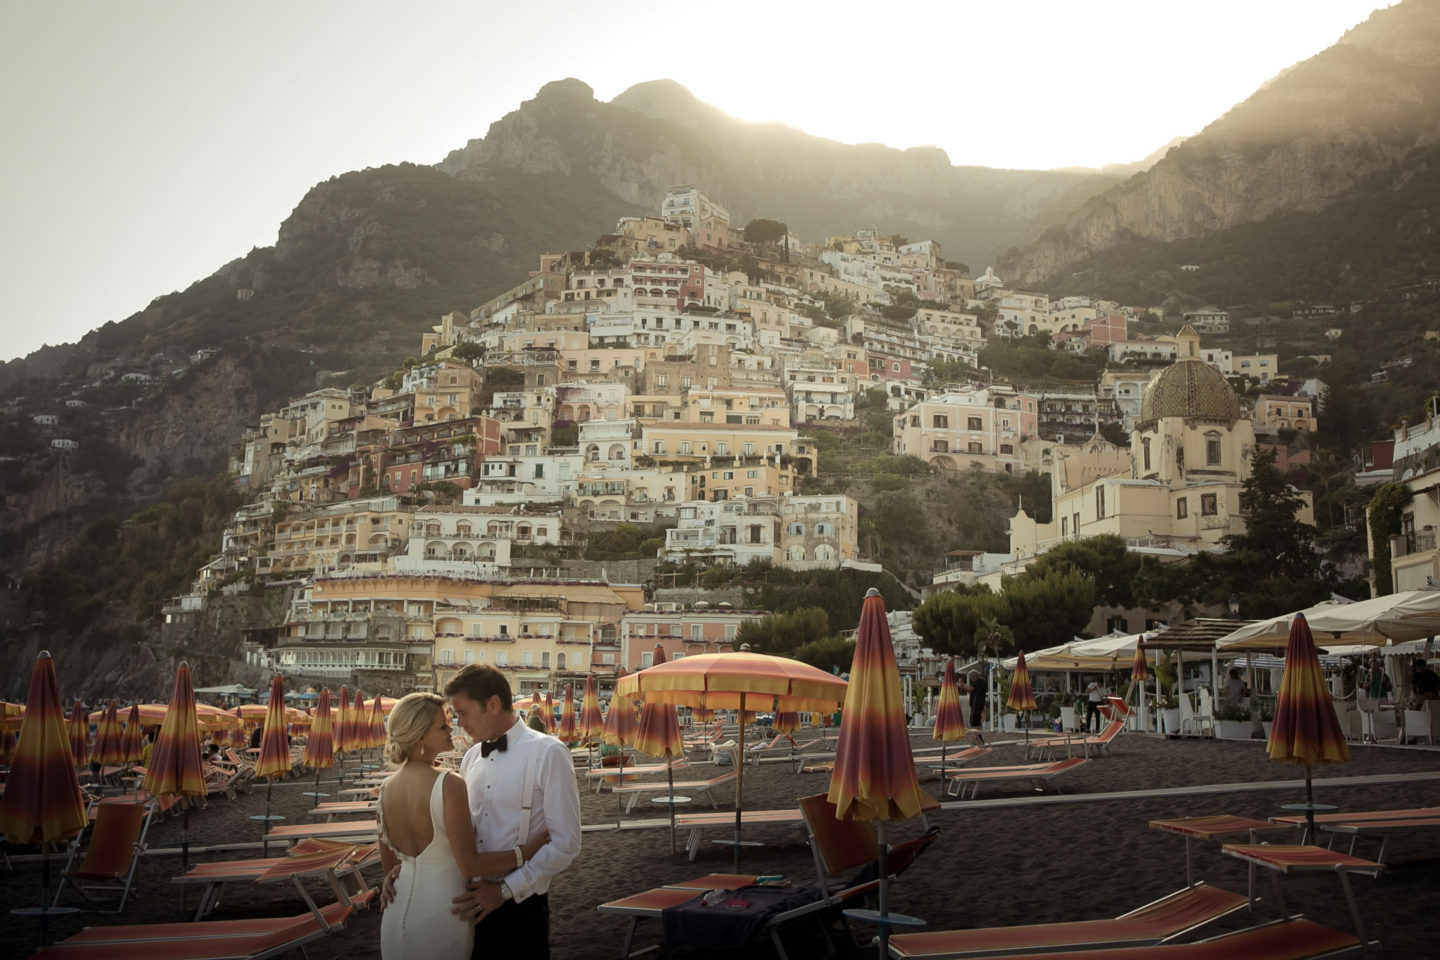 View :: Wedding in Positano. Sea and love :: Wedding photographer based in Florence Tuscany Italy :: photo-47 :: View